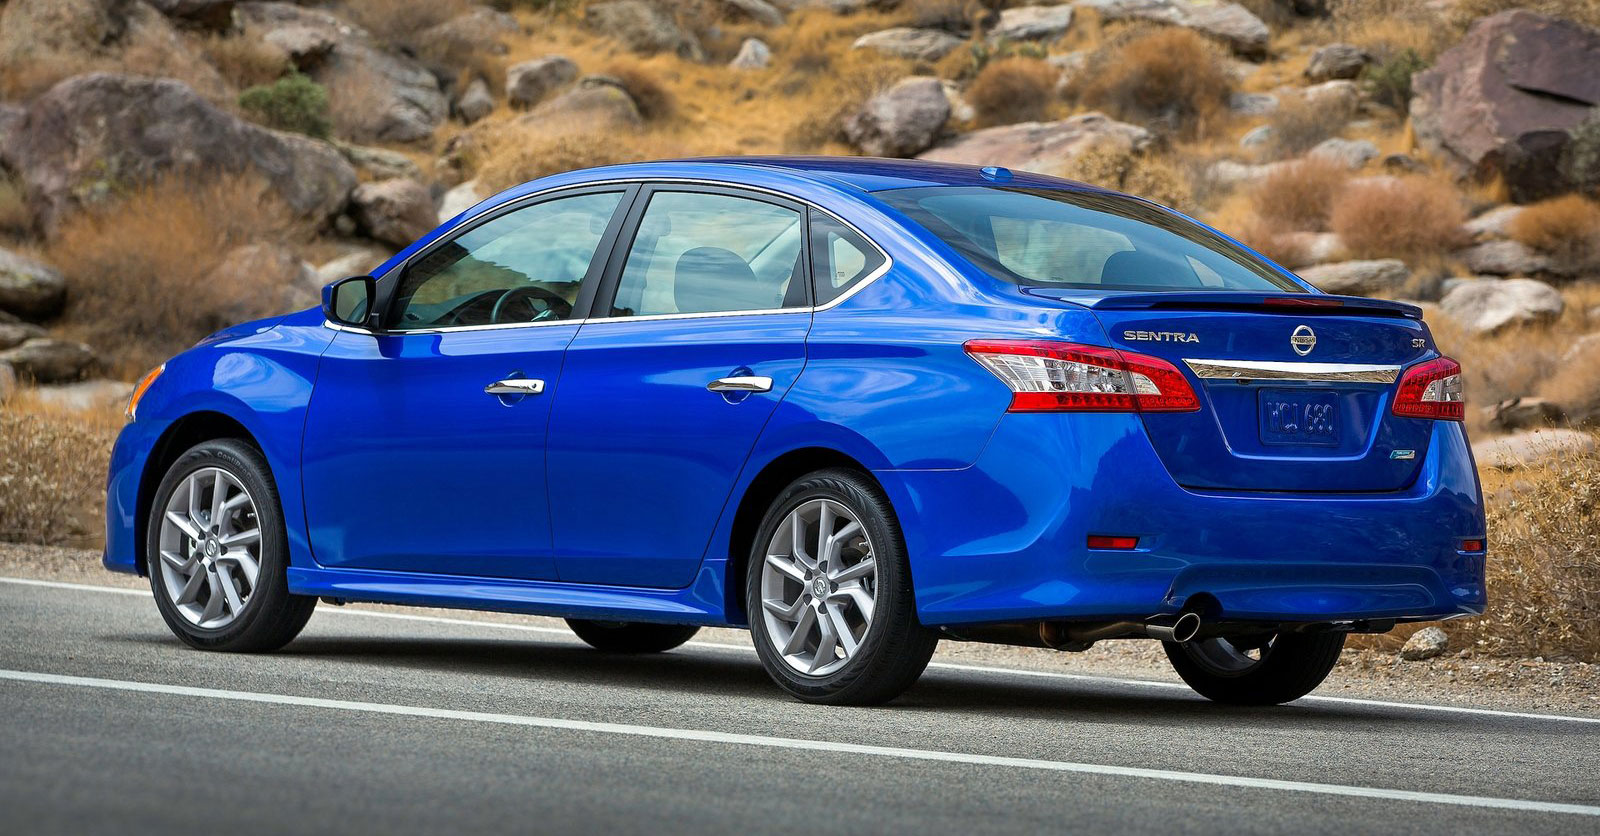 New Nissan Sylphy is the 2013 Nissan Sentra in USA Image ...